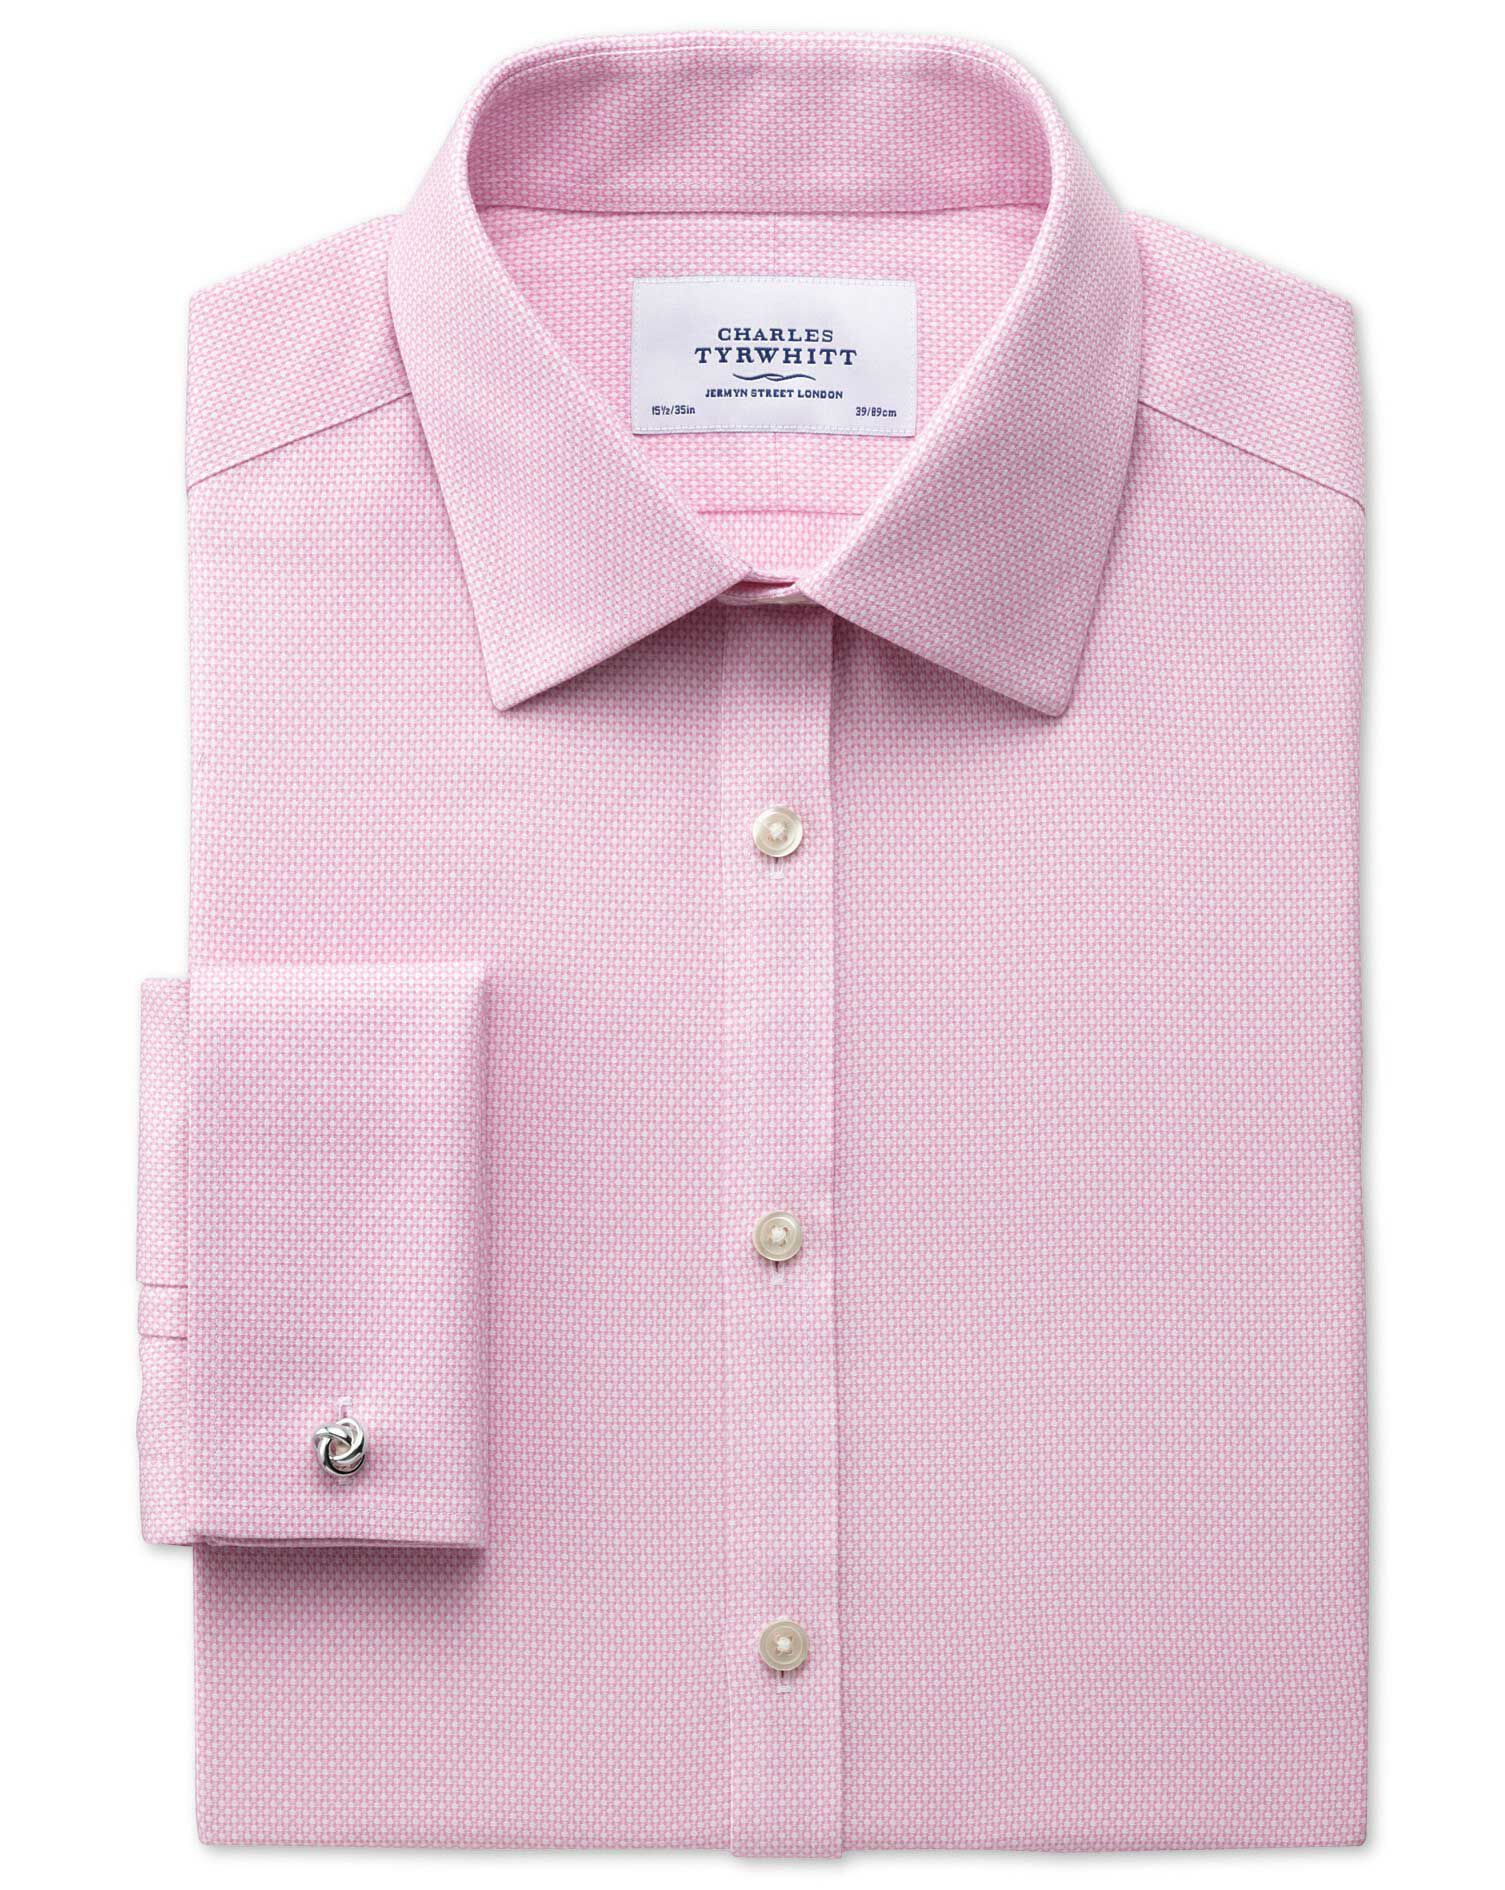 Extra Slim Fit Non-Iron Honeycomb Pink Cotton Formal Shirt Double Cuff Size 17/33 by Charles Tyrwhit